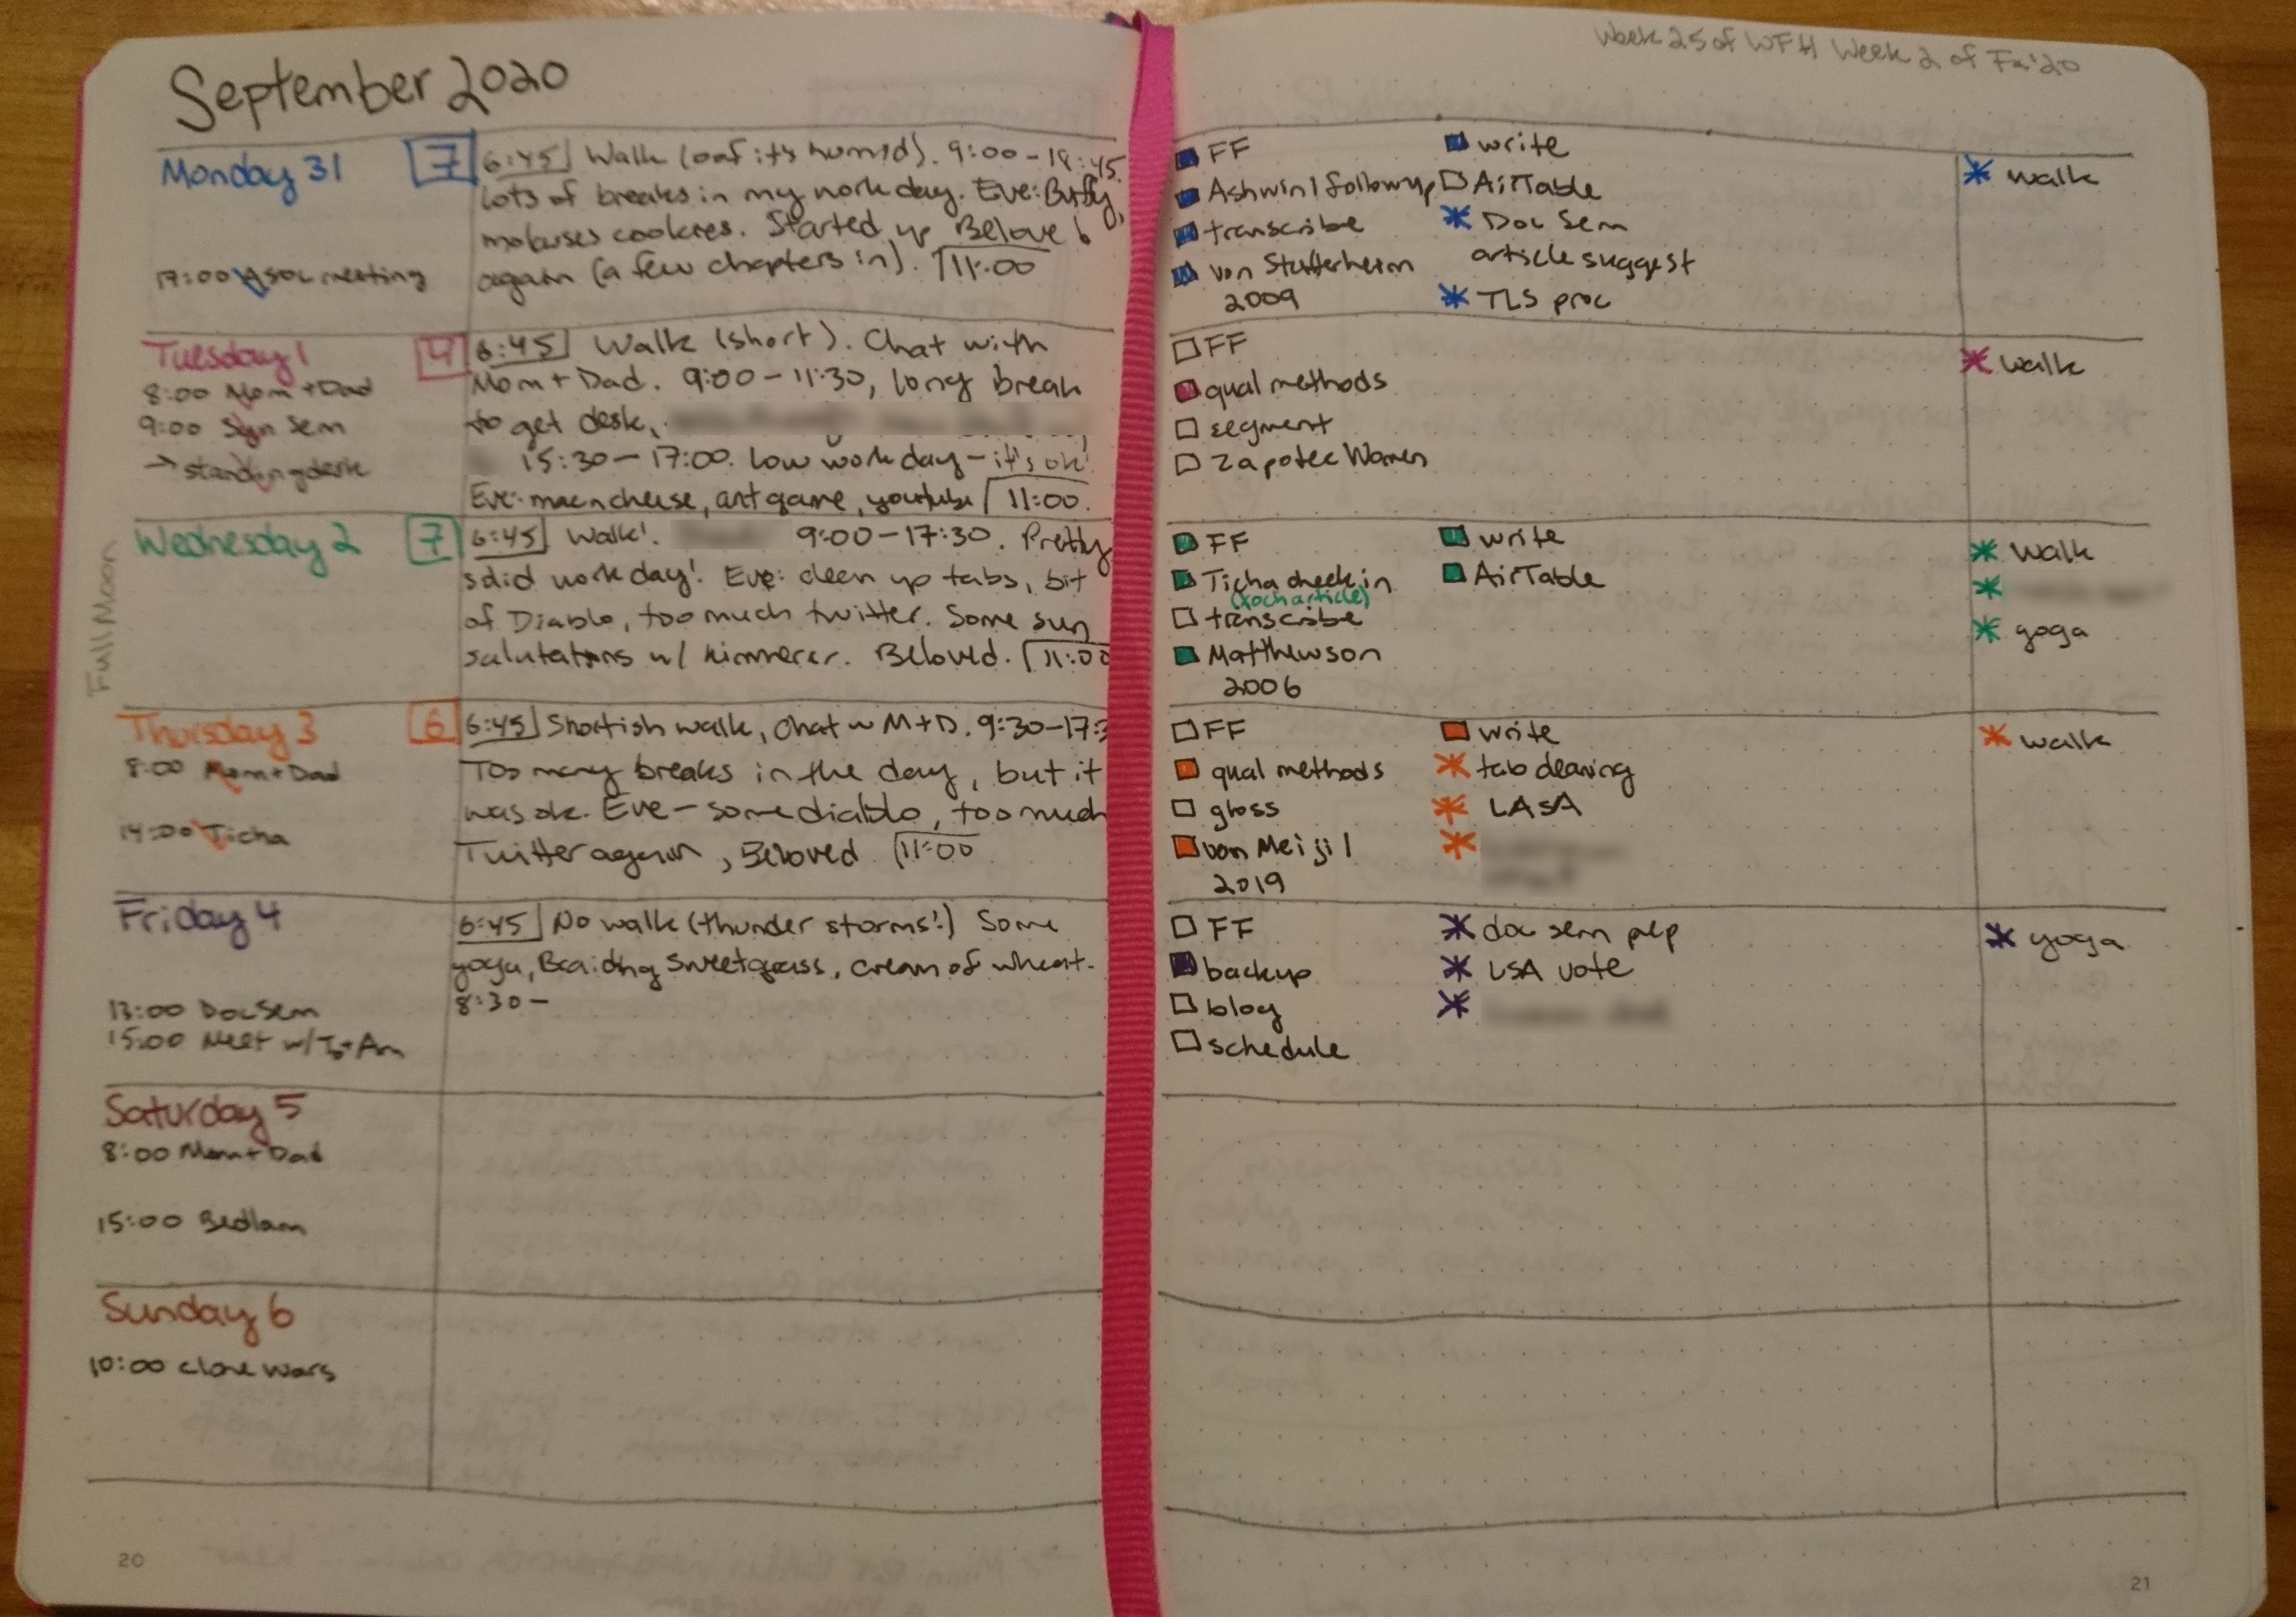 My weekly schedule, freedrawn in a bullet journal, is divided into seven long horizonal strips. Each day has it's own color, and is divided into a list of events for the day, a small journal section, a list of work-related to-do's, and a list of additional household tasks.